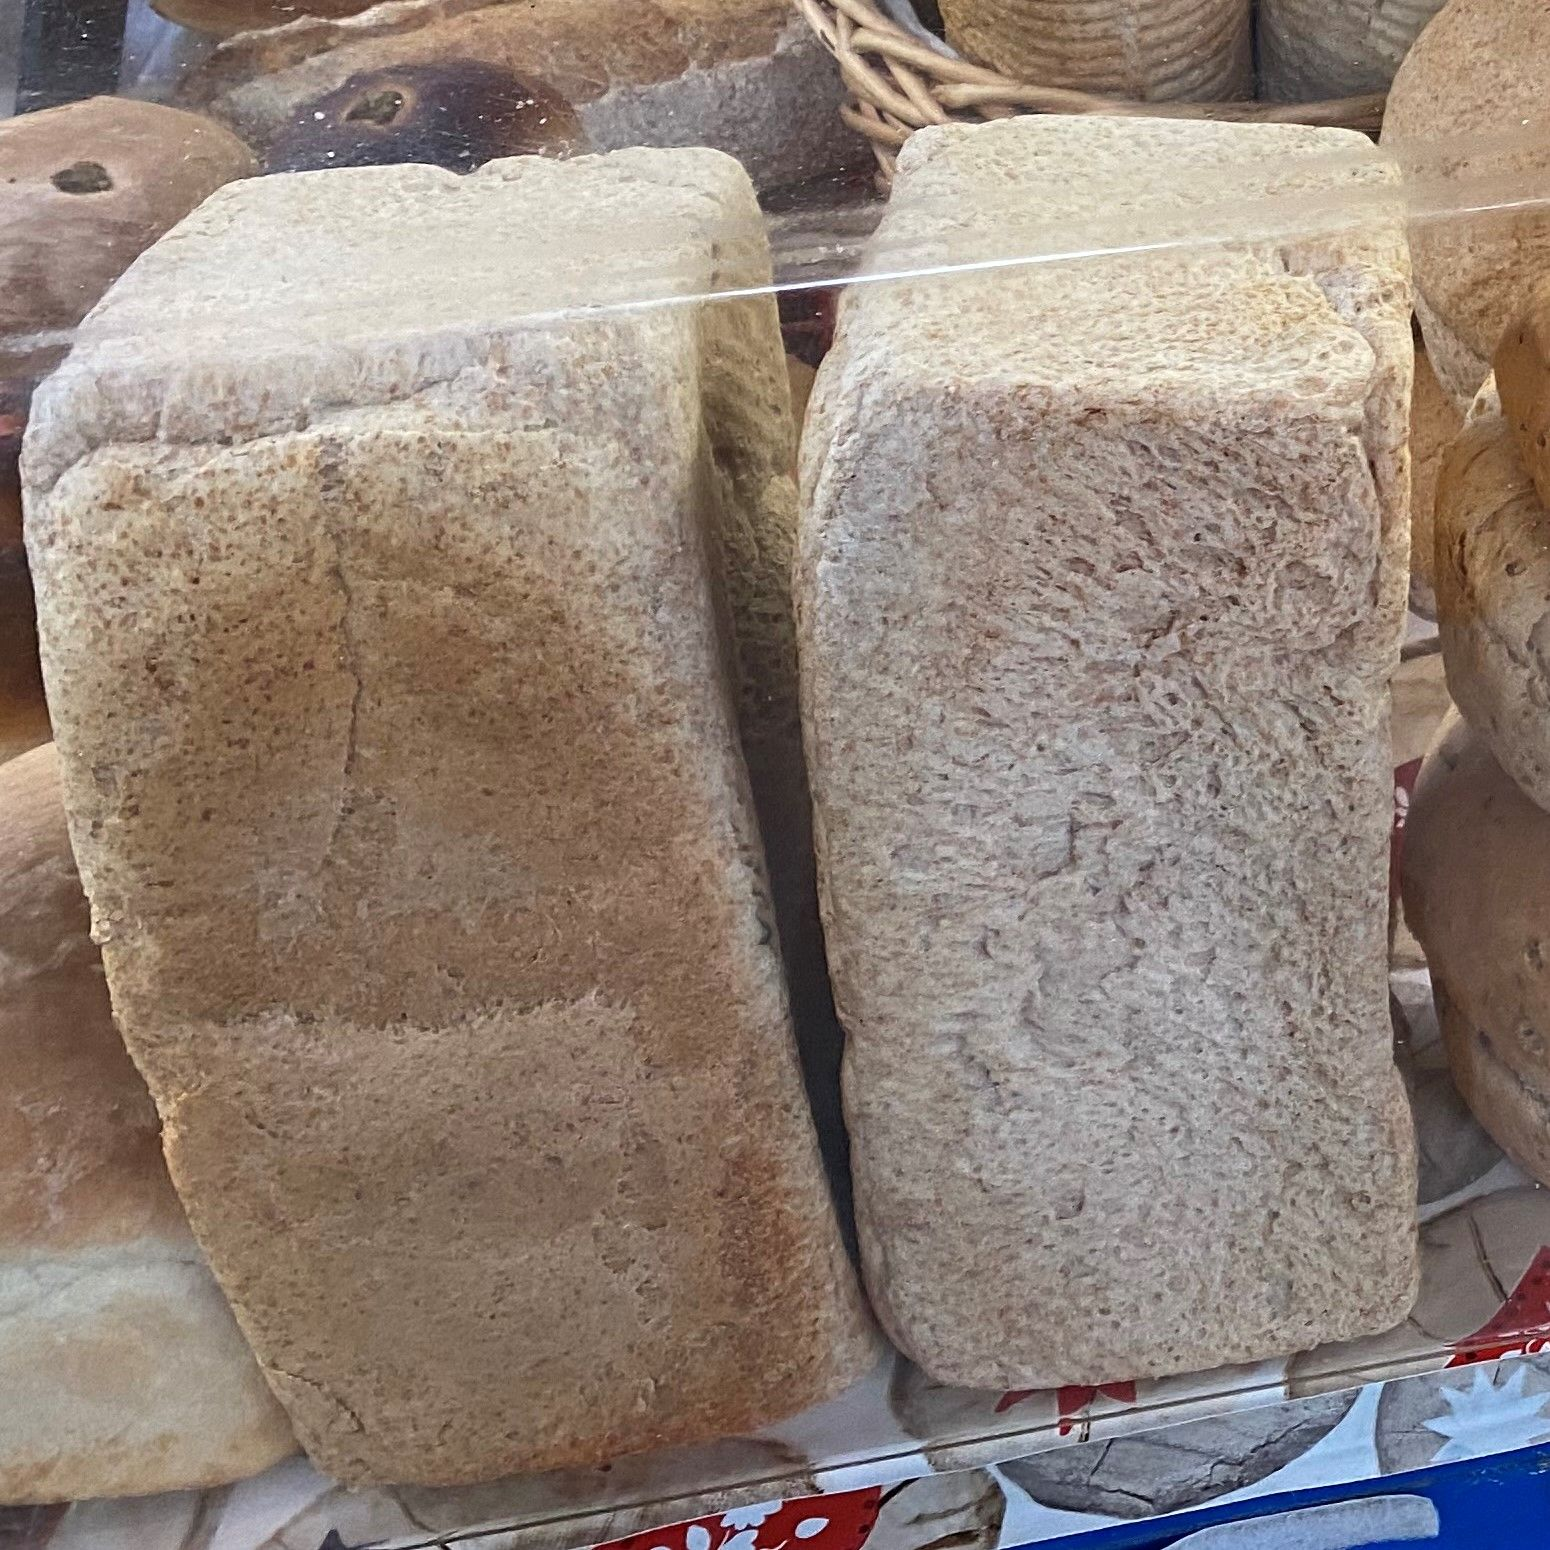 Large wholemeal sandwich unsliced - £1.80